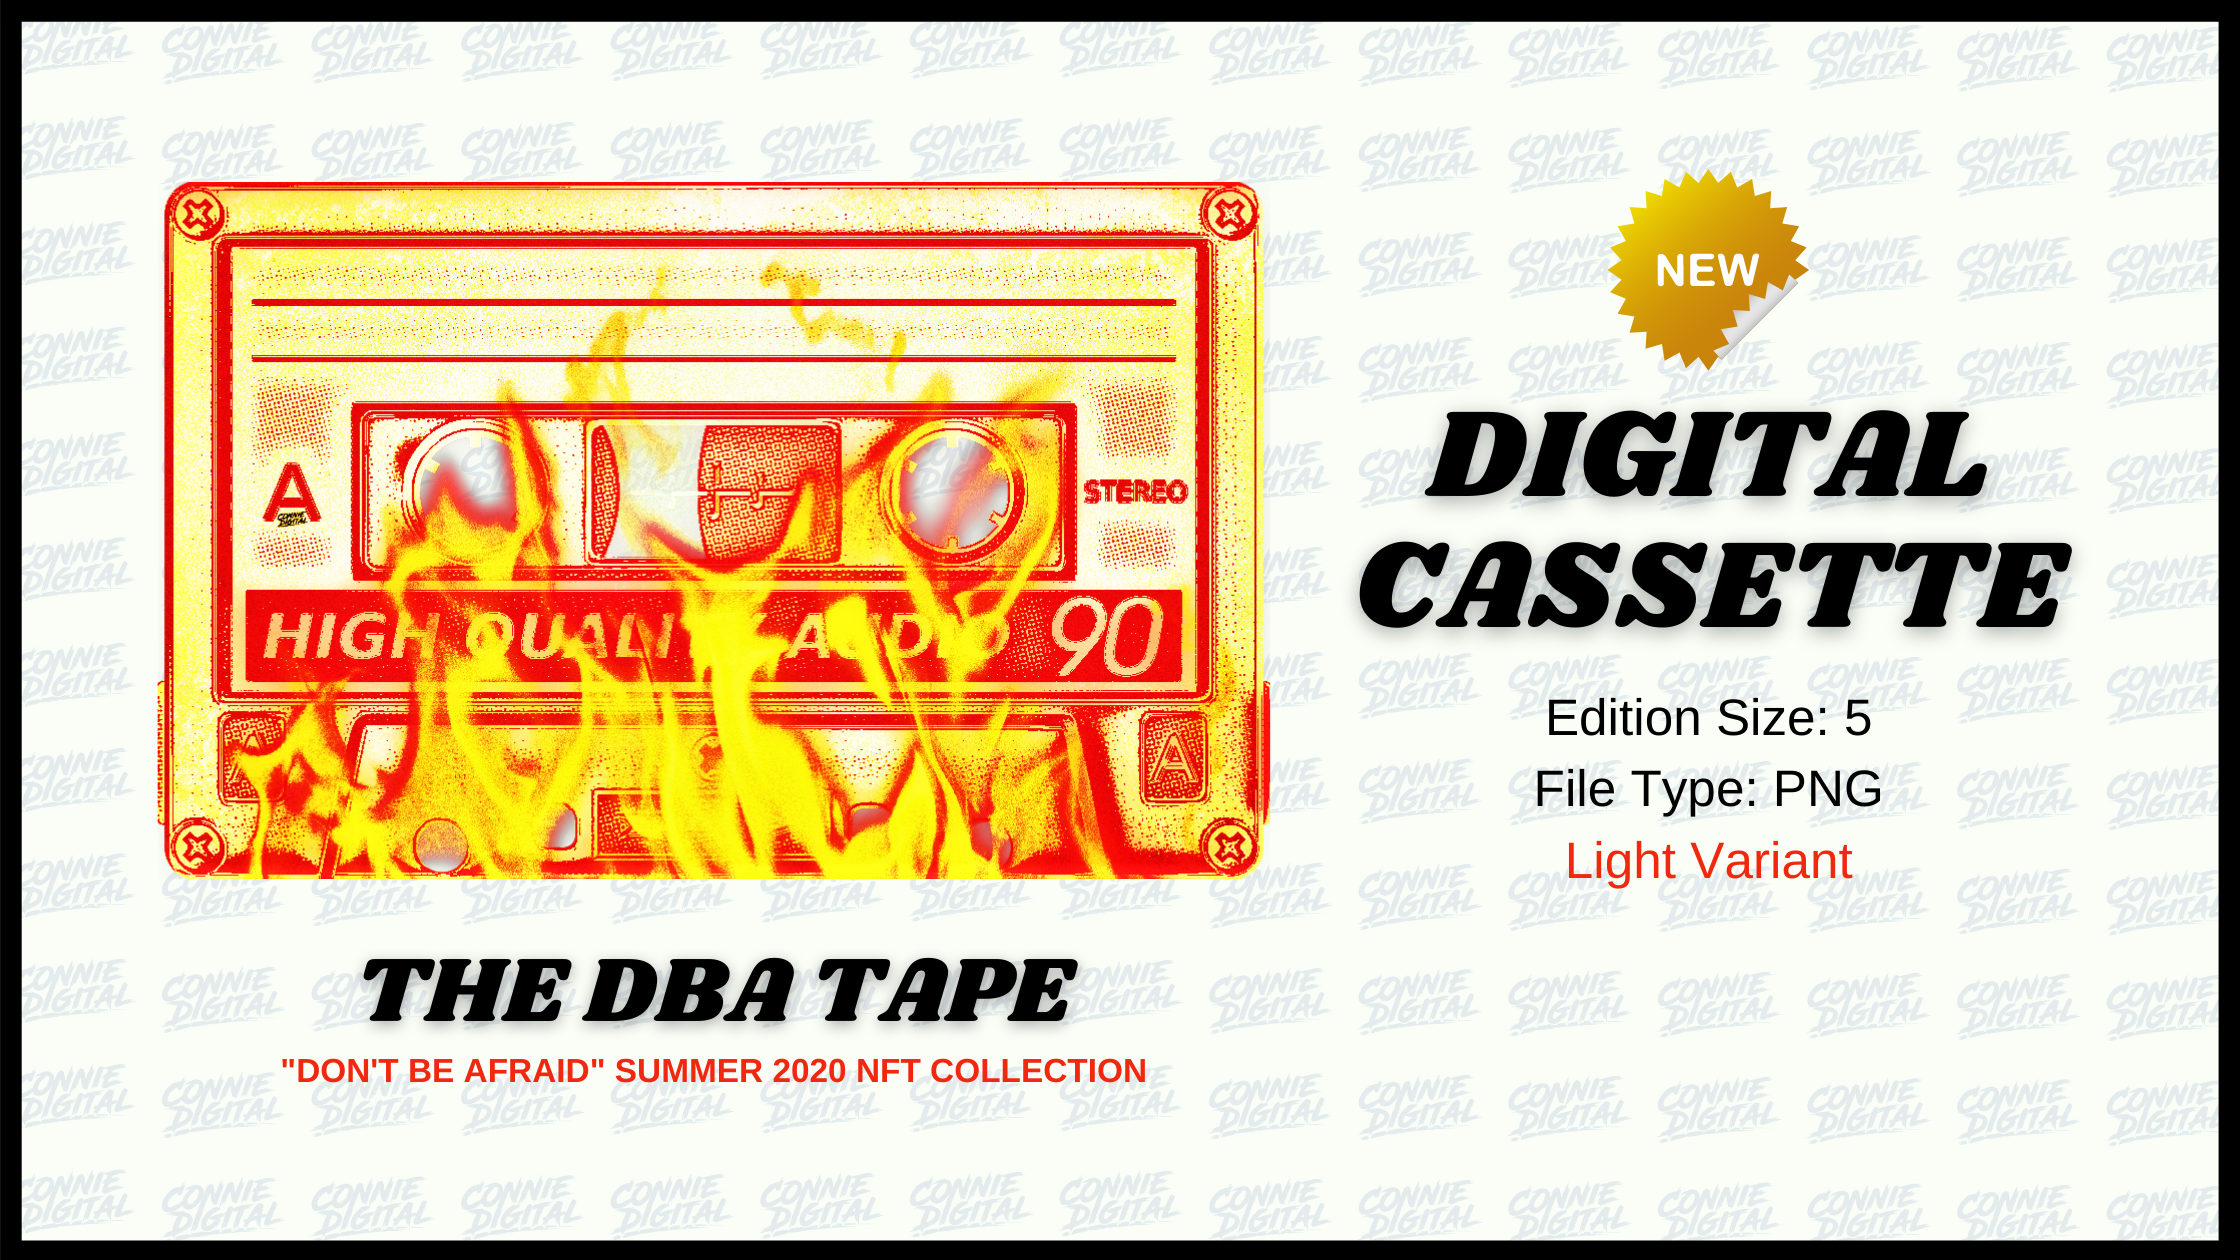 Digital Cassette Collection 2020 - Connie Digital Dont Be Afraid